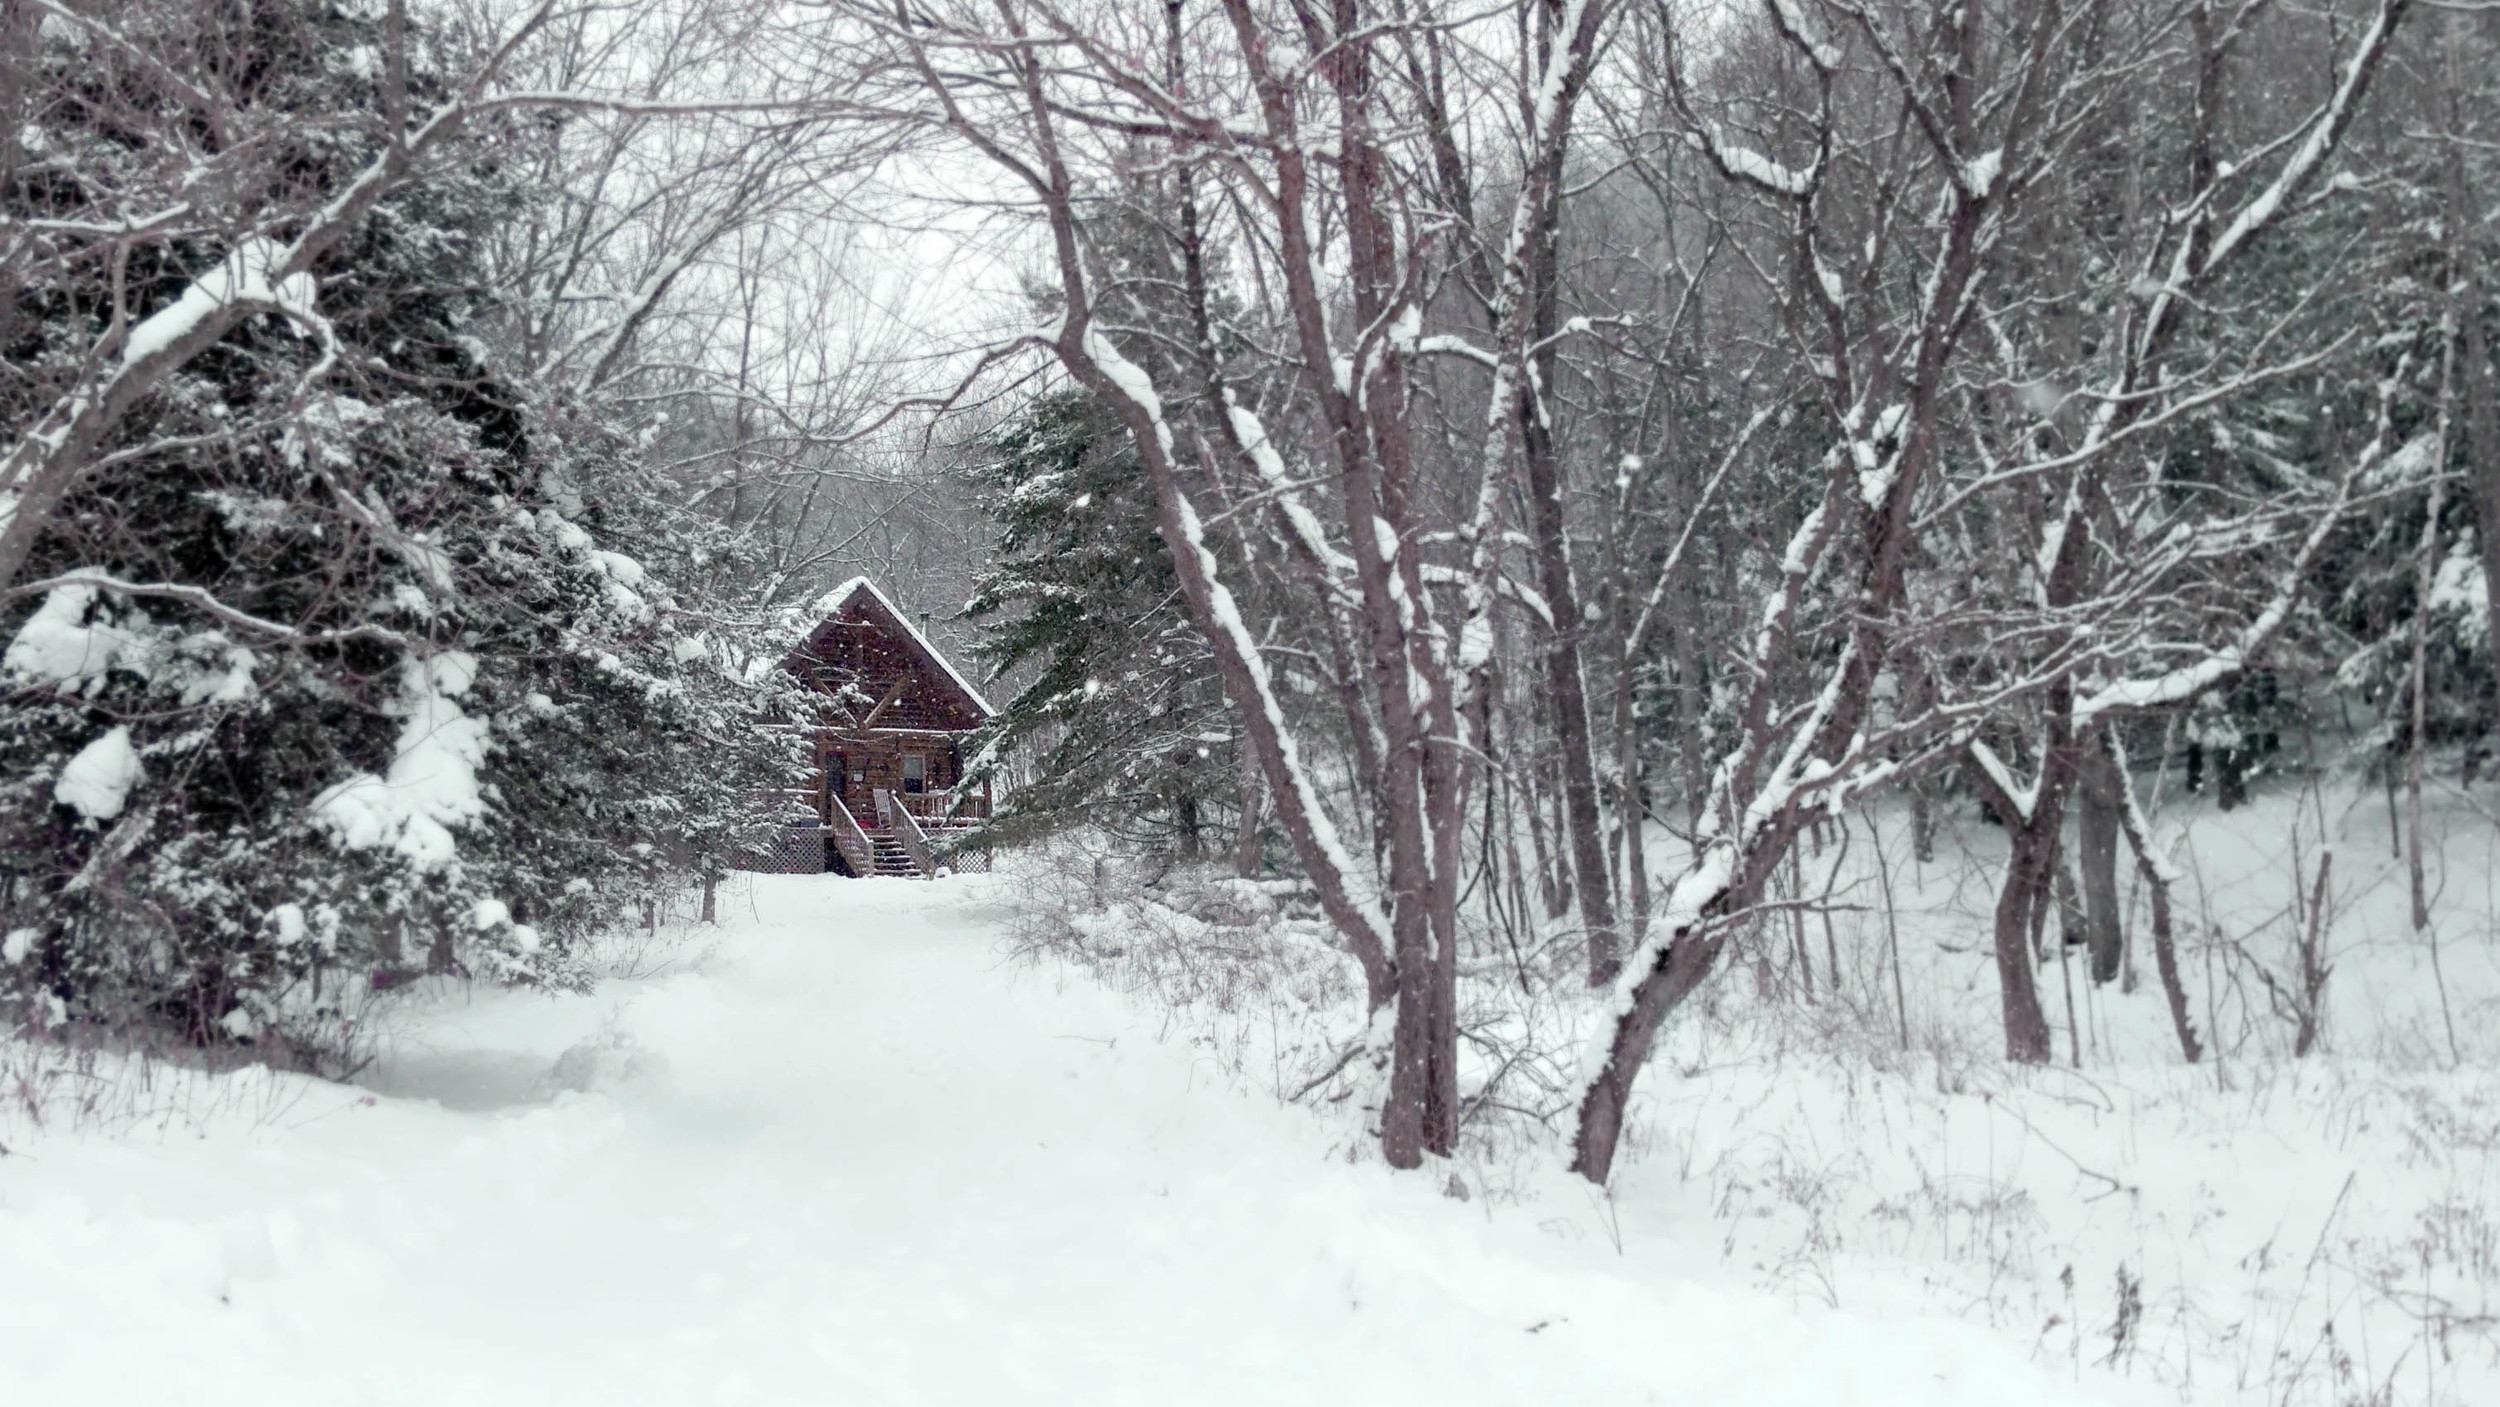 log cabin snow 2.jpg